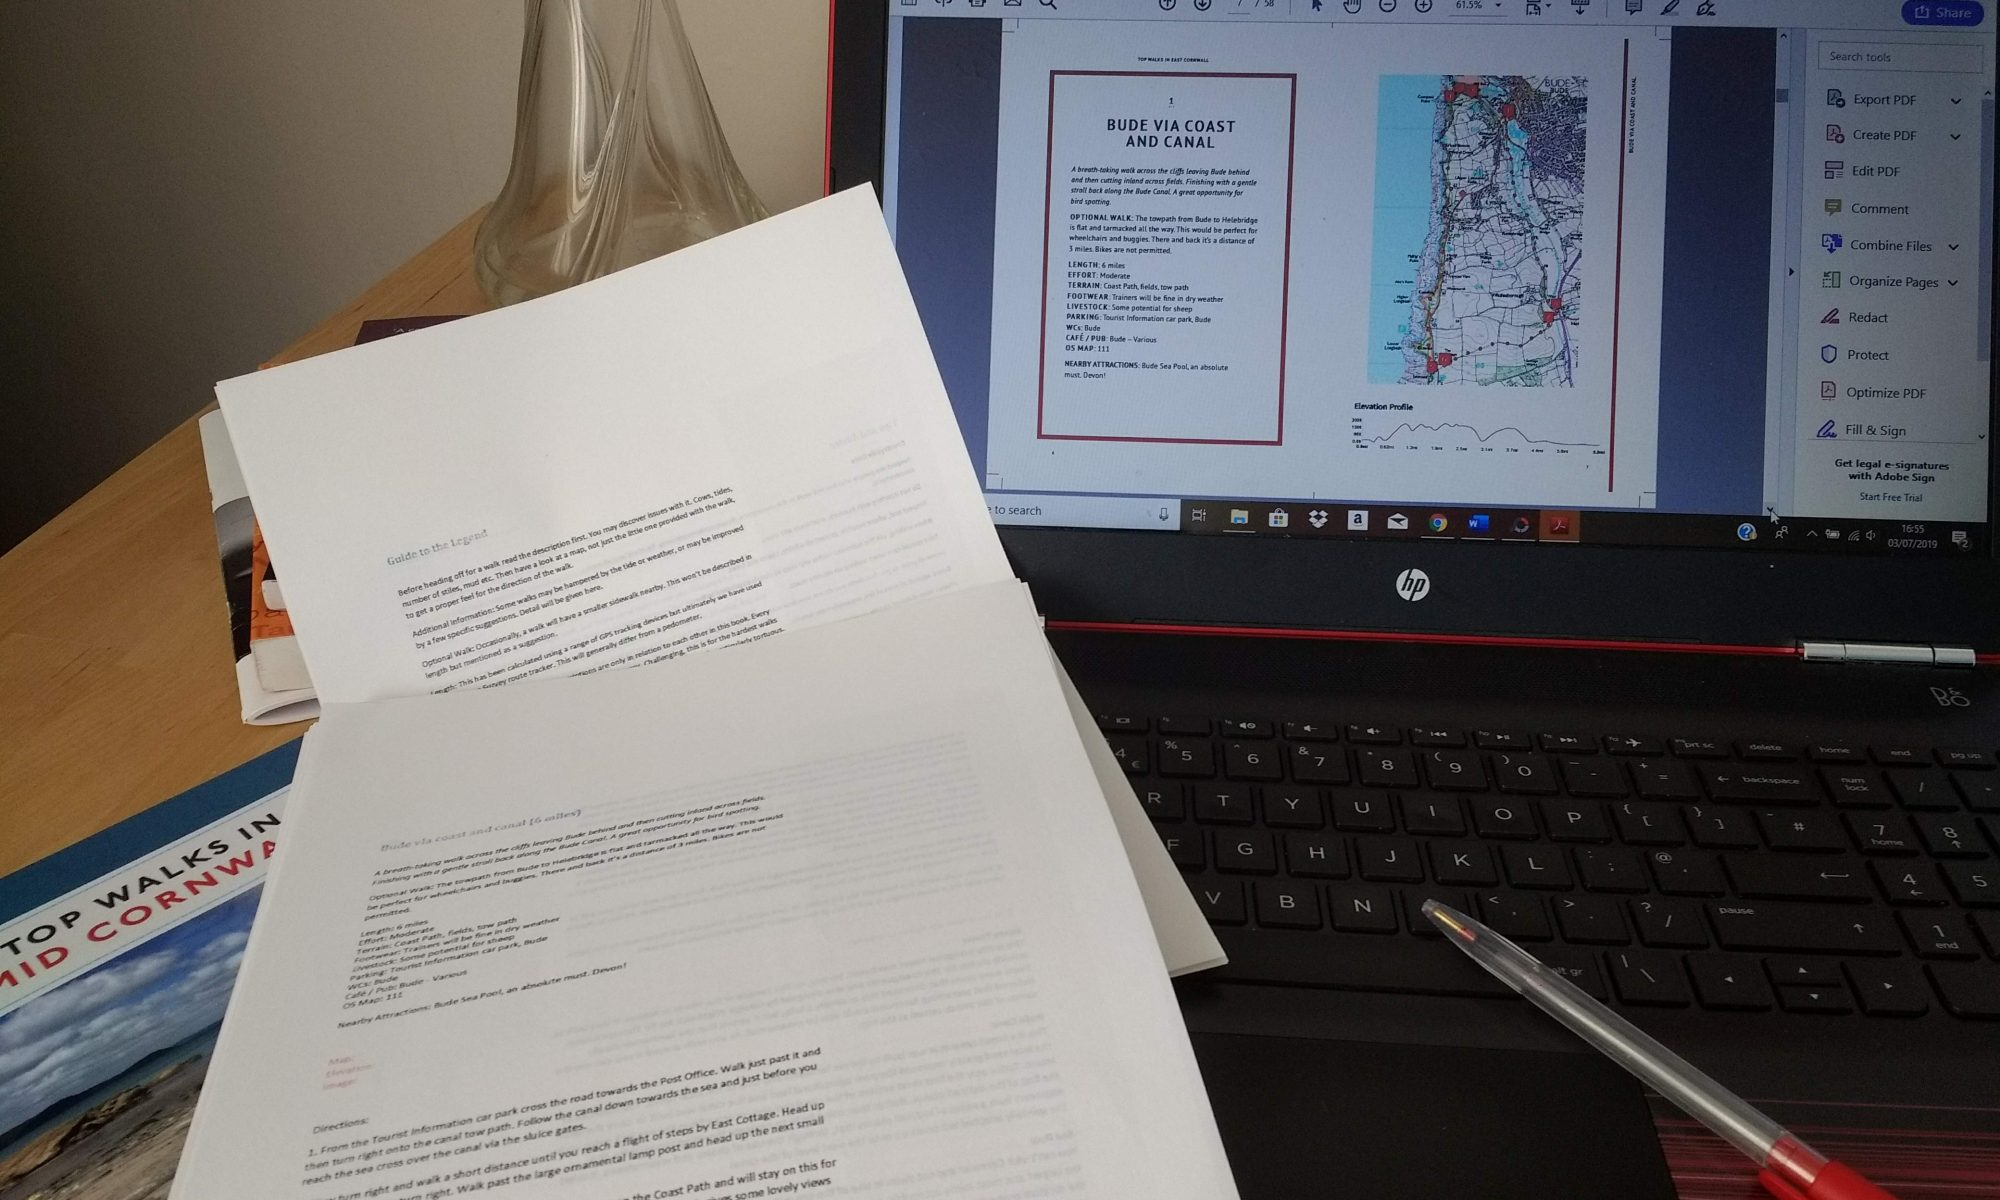 Photo of laptop and copy documents of a proofreading job